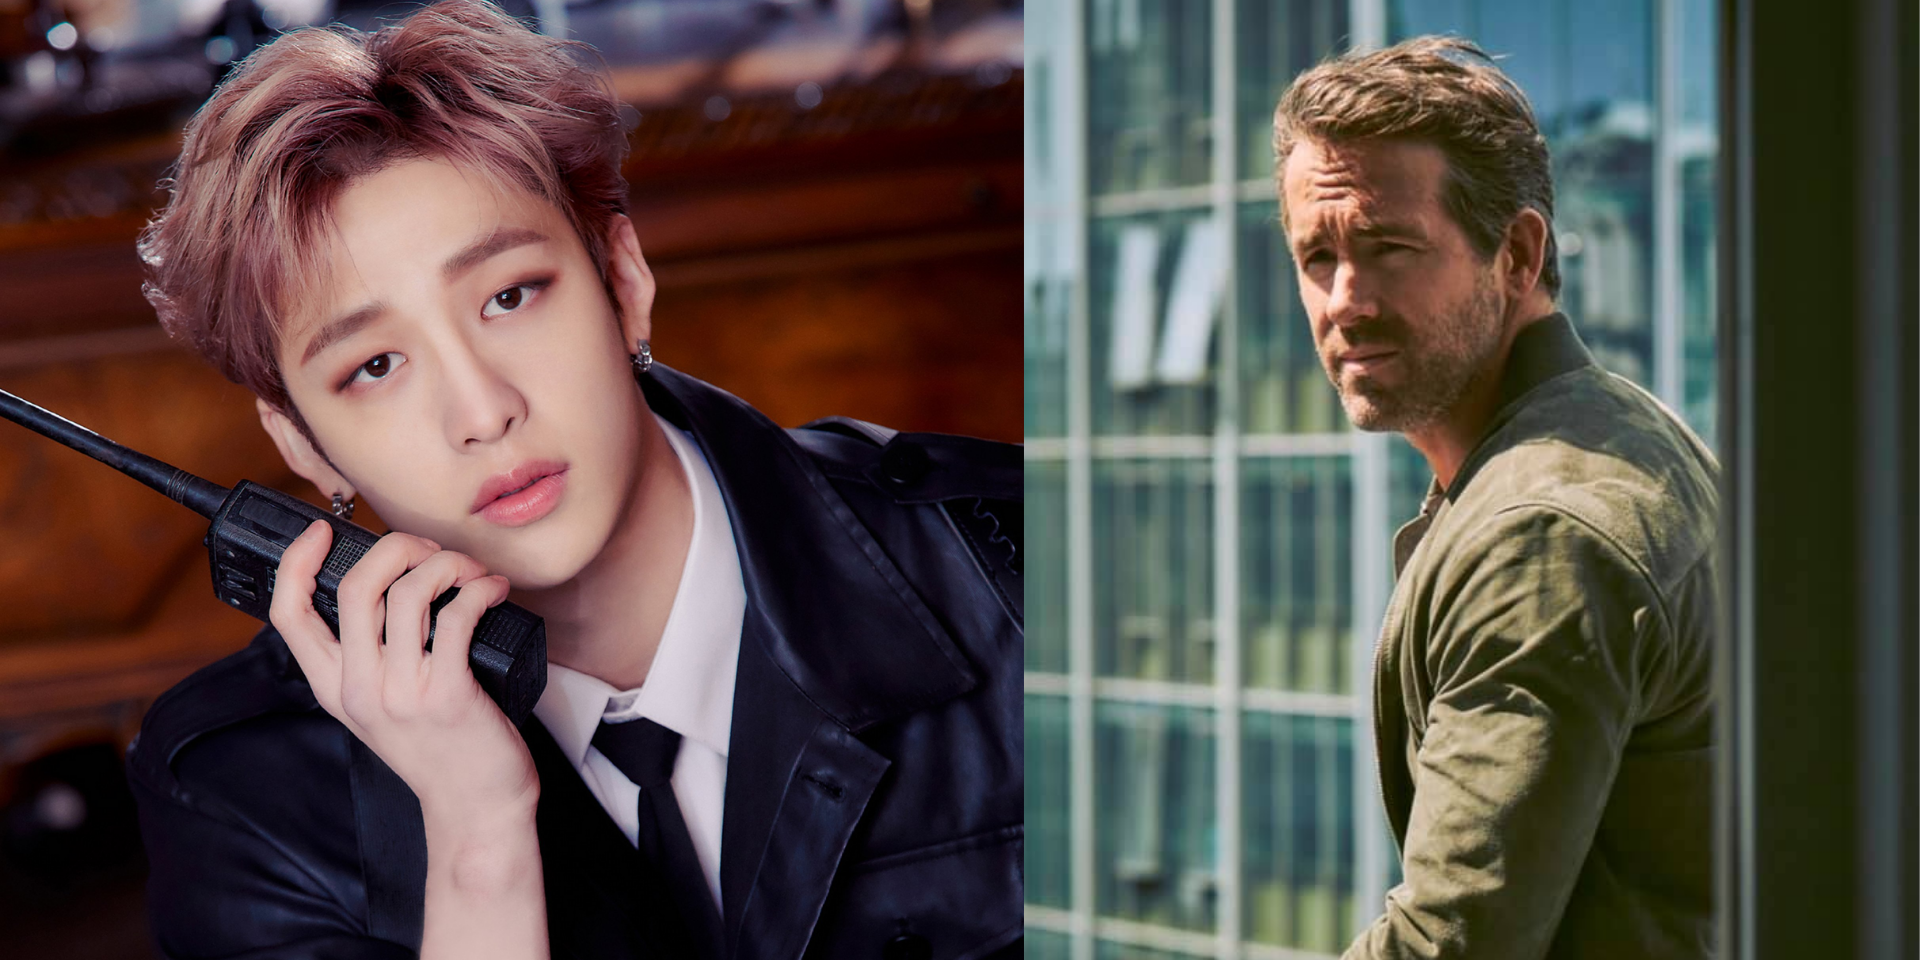 """Ryan Reynolds talks to Bang Chan about 'Free Guy' and Stray Kids' upcoming 'NOEASY' album: """"I think you're all amazing, I'm such a huge fan"""""""